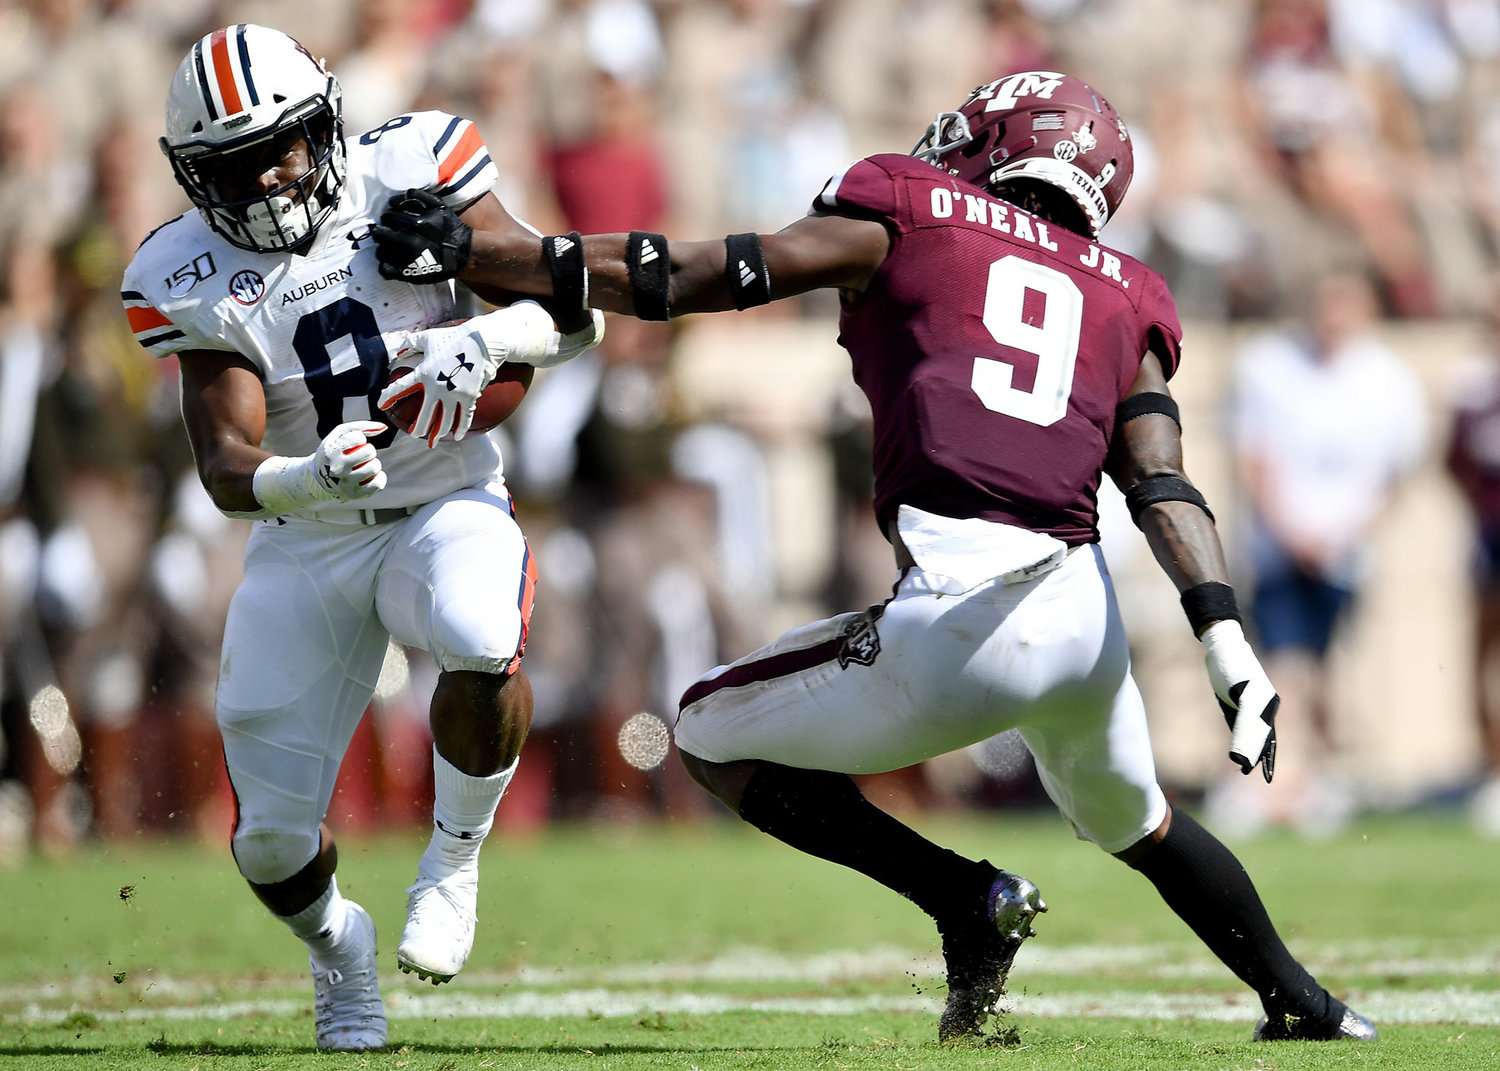 Auburn Tigers running back Shaun Shivers (8) avoids the tackle of Texas A&M Aggies defensive back Leon O'Neal Jr. (9) in the first half of an NCAA football game Saturday, Sept. 21, 2019, at Kyle Field in College Station Texas. Auburn wins 28-20.